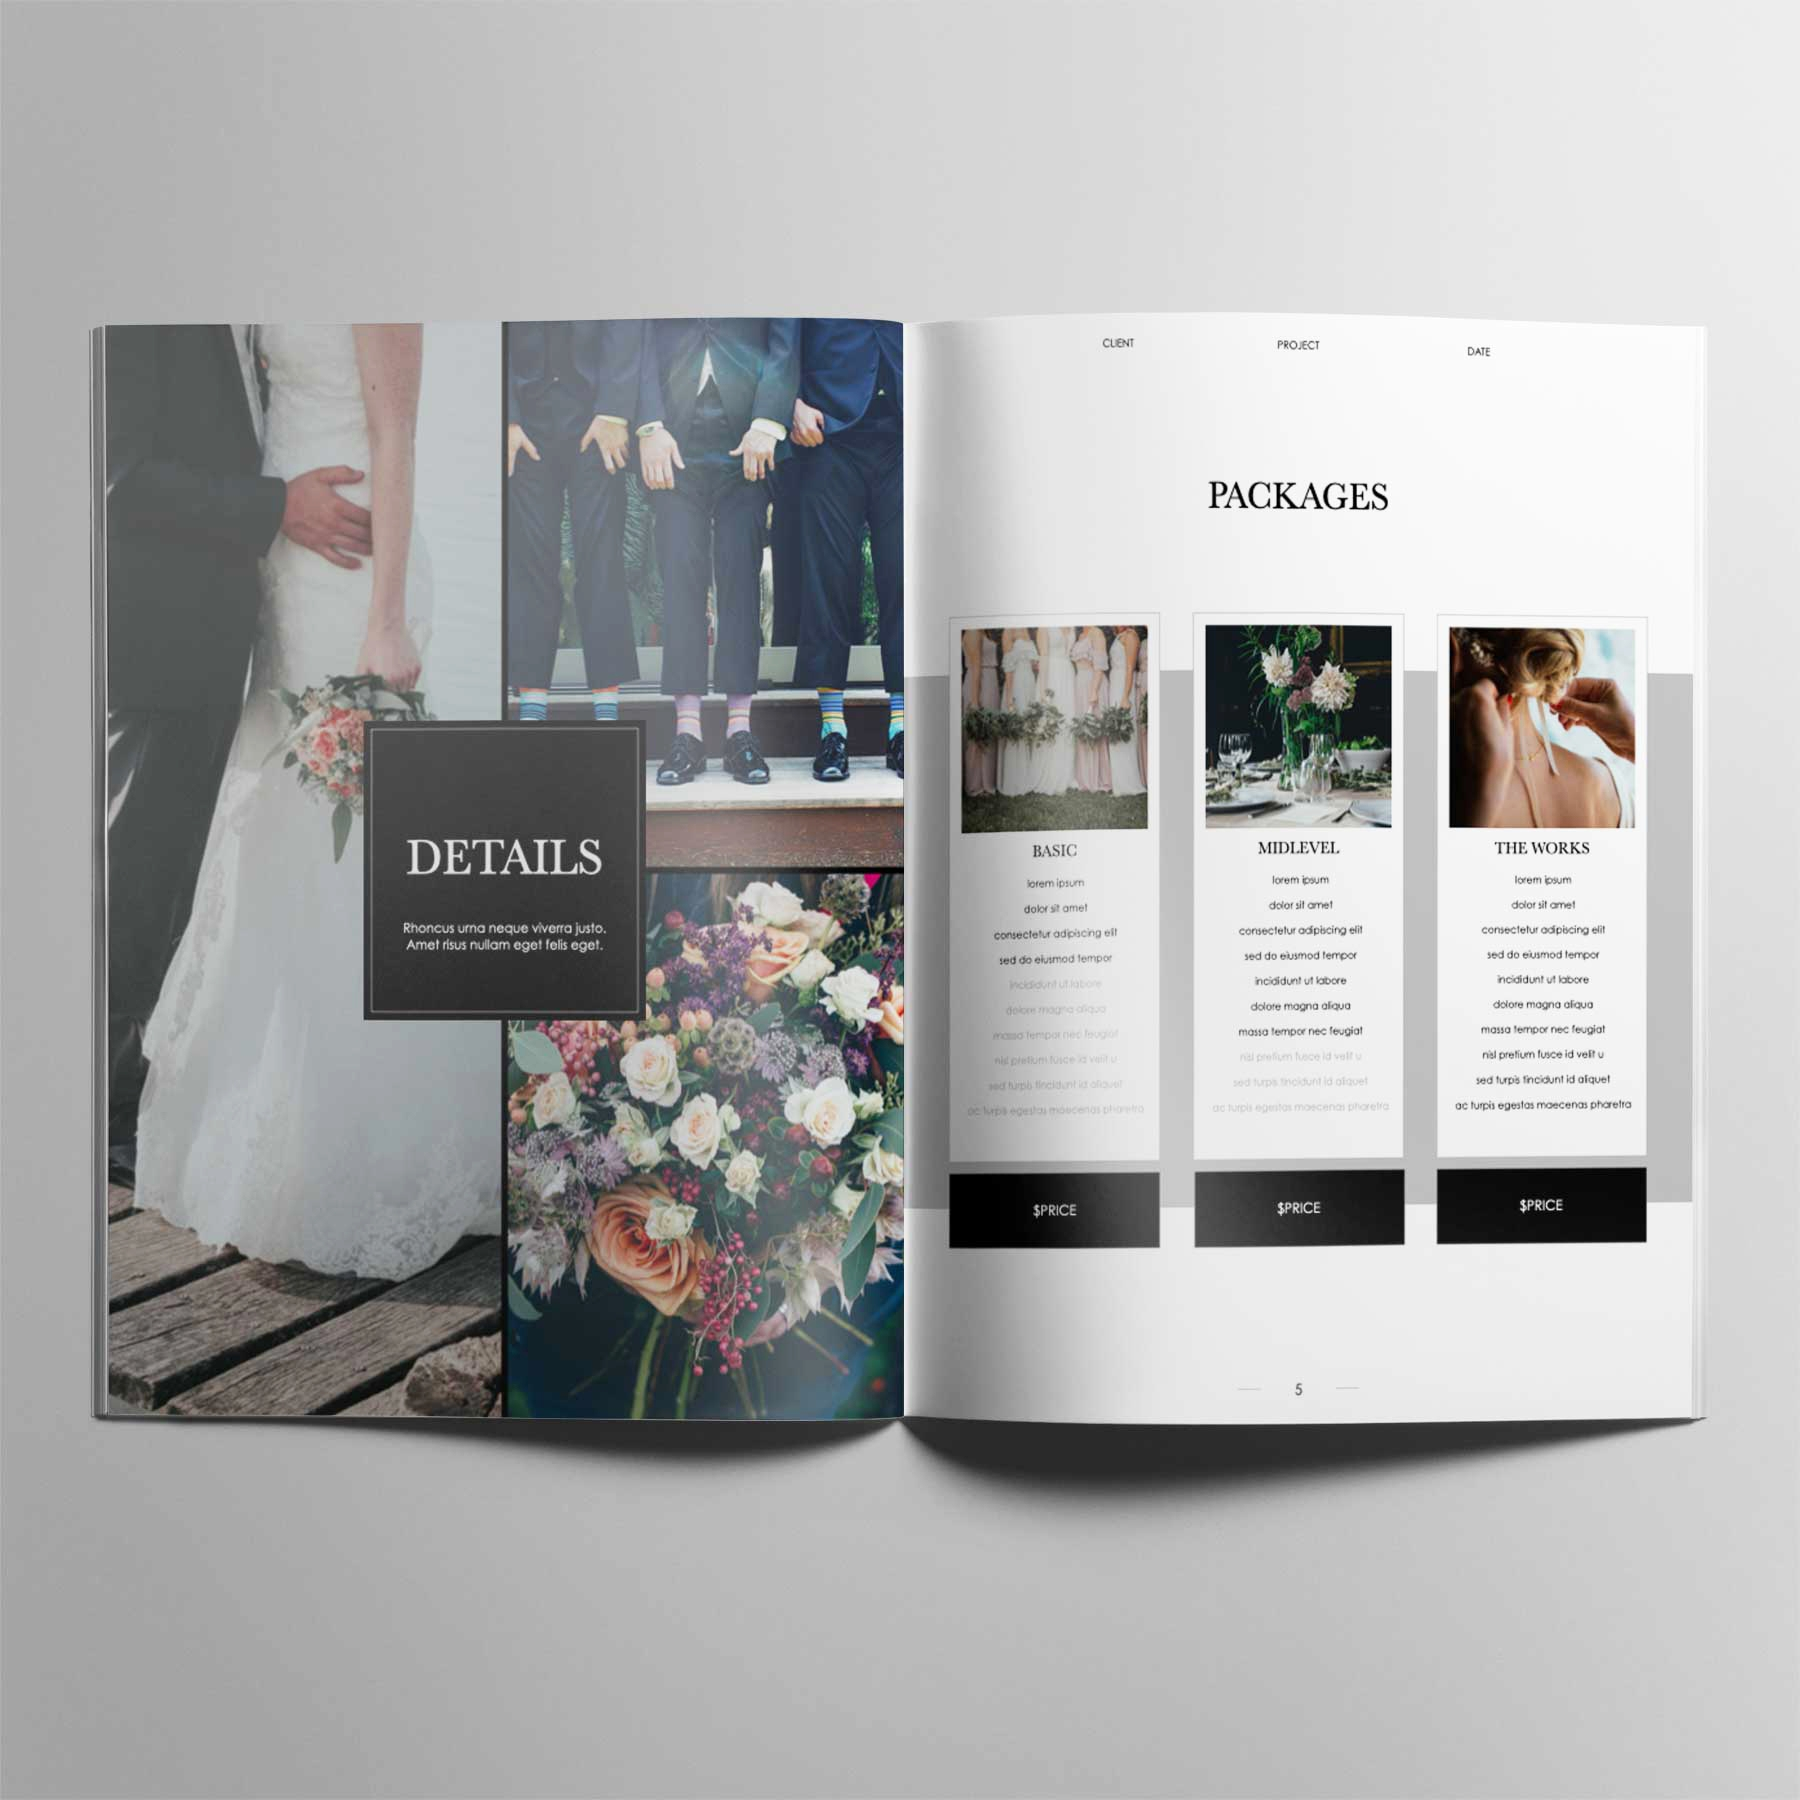 proposal template; powerpoint; keynote; event; small business logo; graphic design; logo design; branding